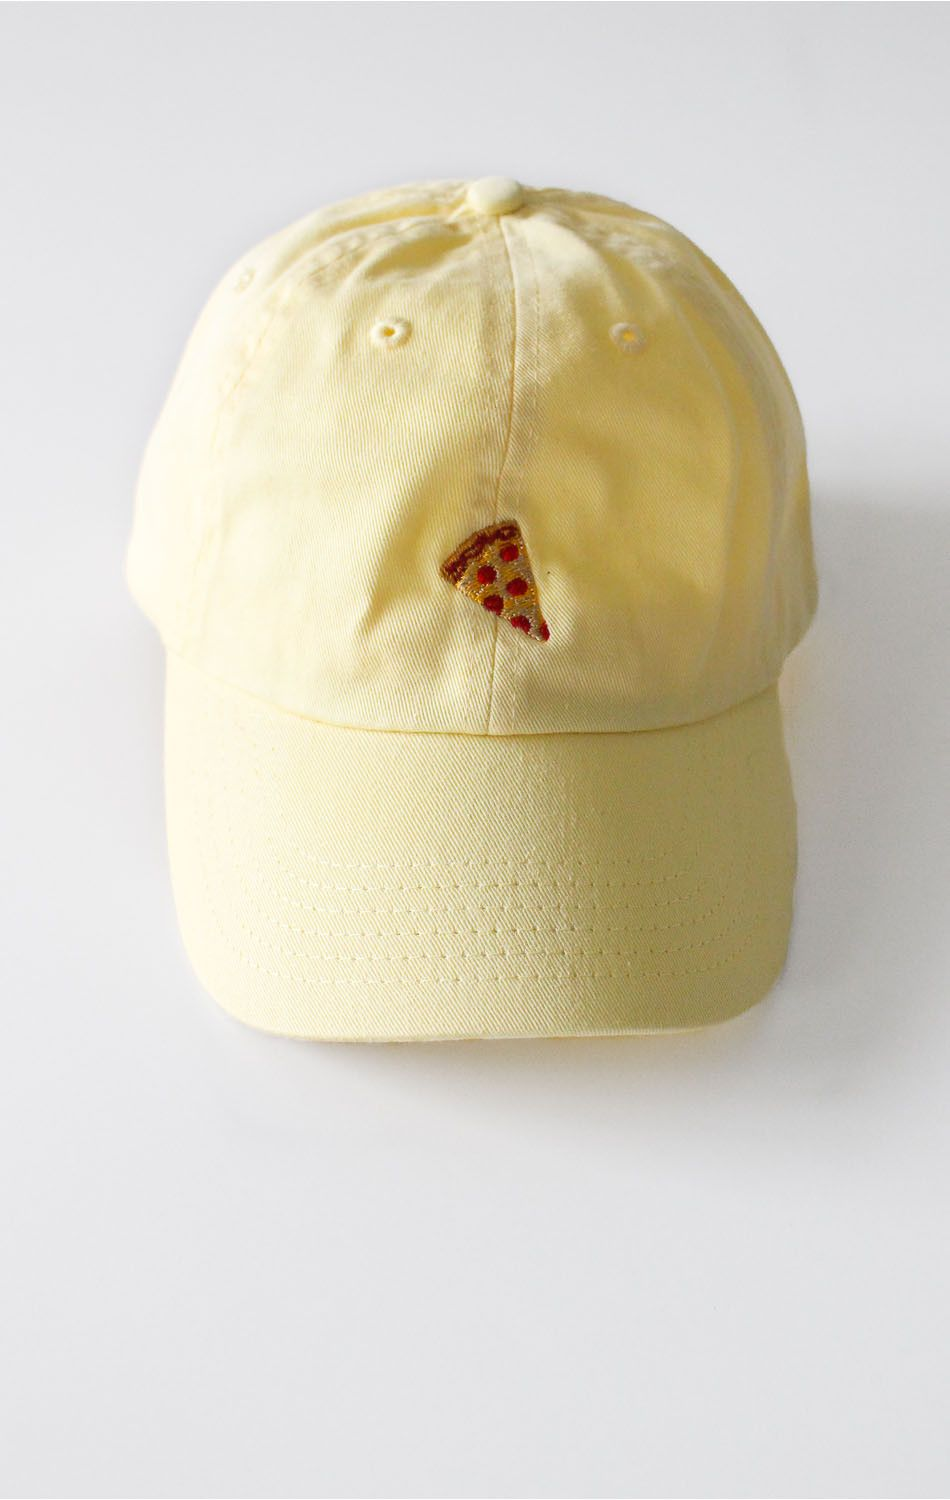 - Description Details: Yellow six panel baseball cap with 'Pizza' embroidery & adjustable back with tri-glide buckle. 100% Chino Twill. Imported. All accessories are final sale. Sizing: Adjustable, 2